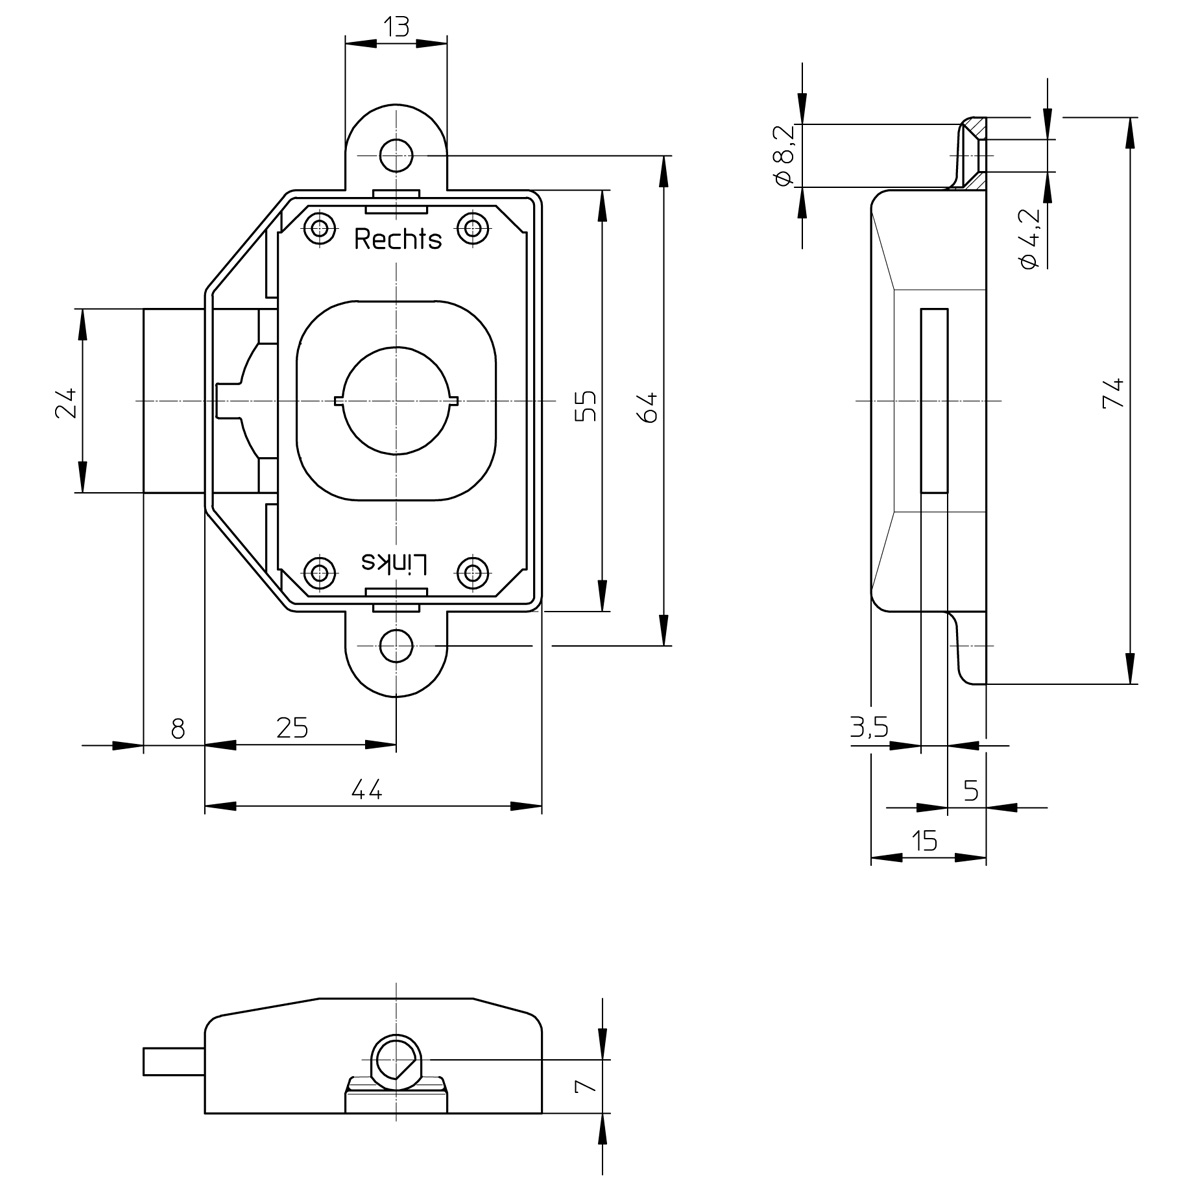 2004 ford explorer fuse layout